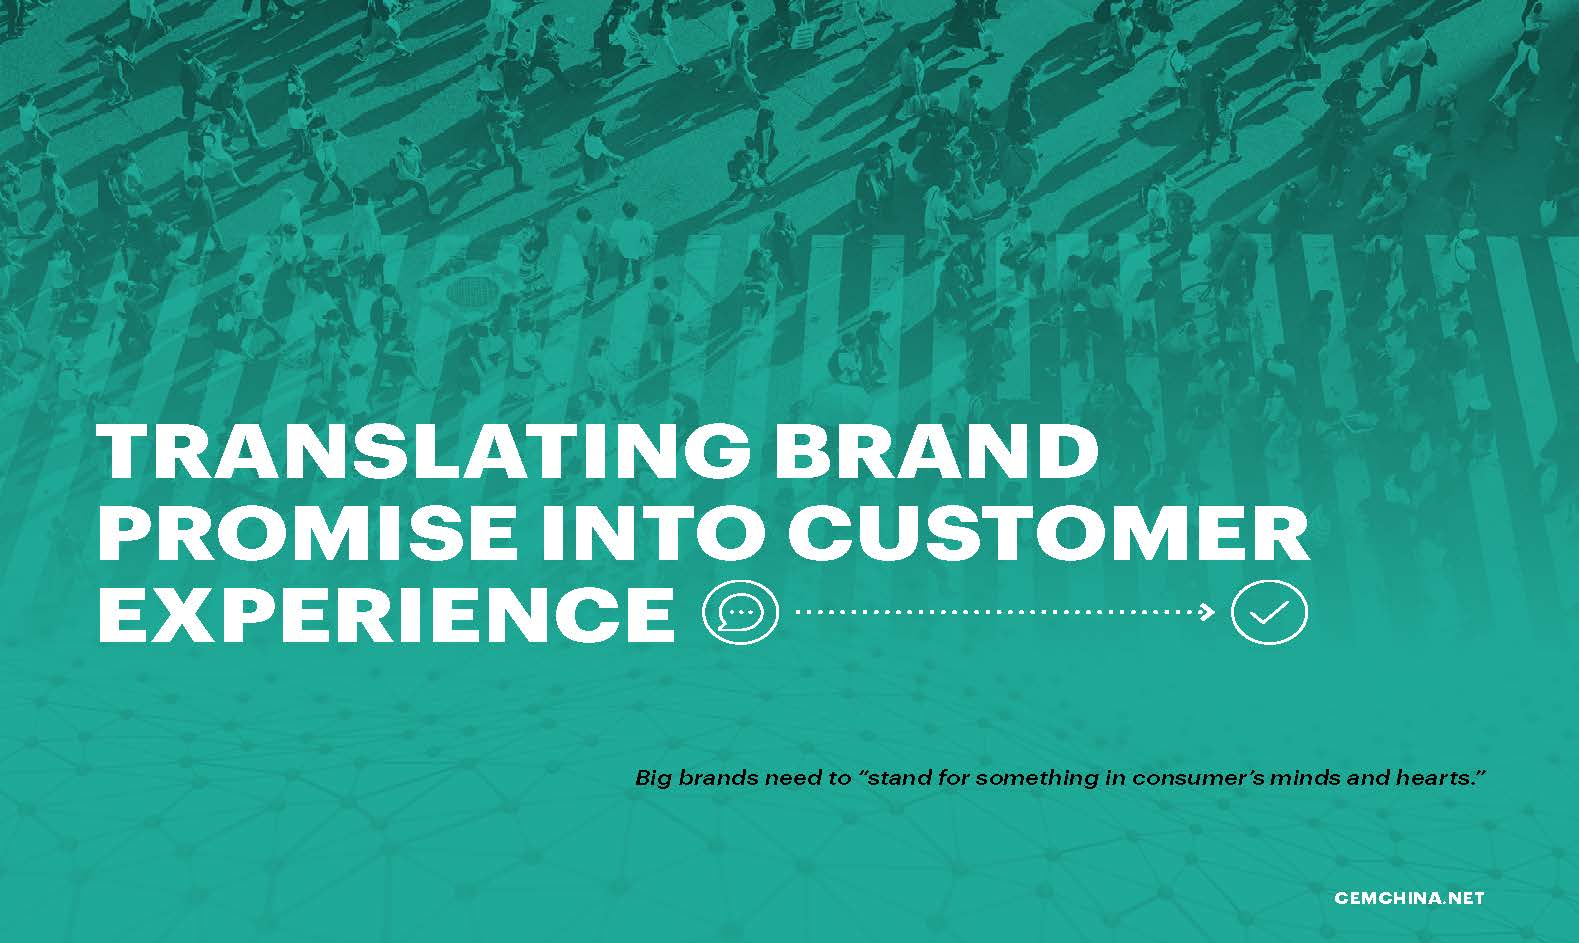 Download the Article - Translating Brand Promise Into Customer Experience